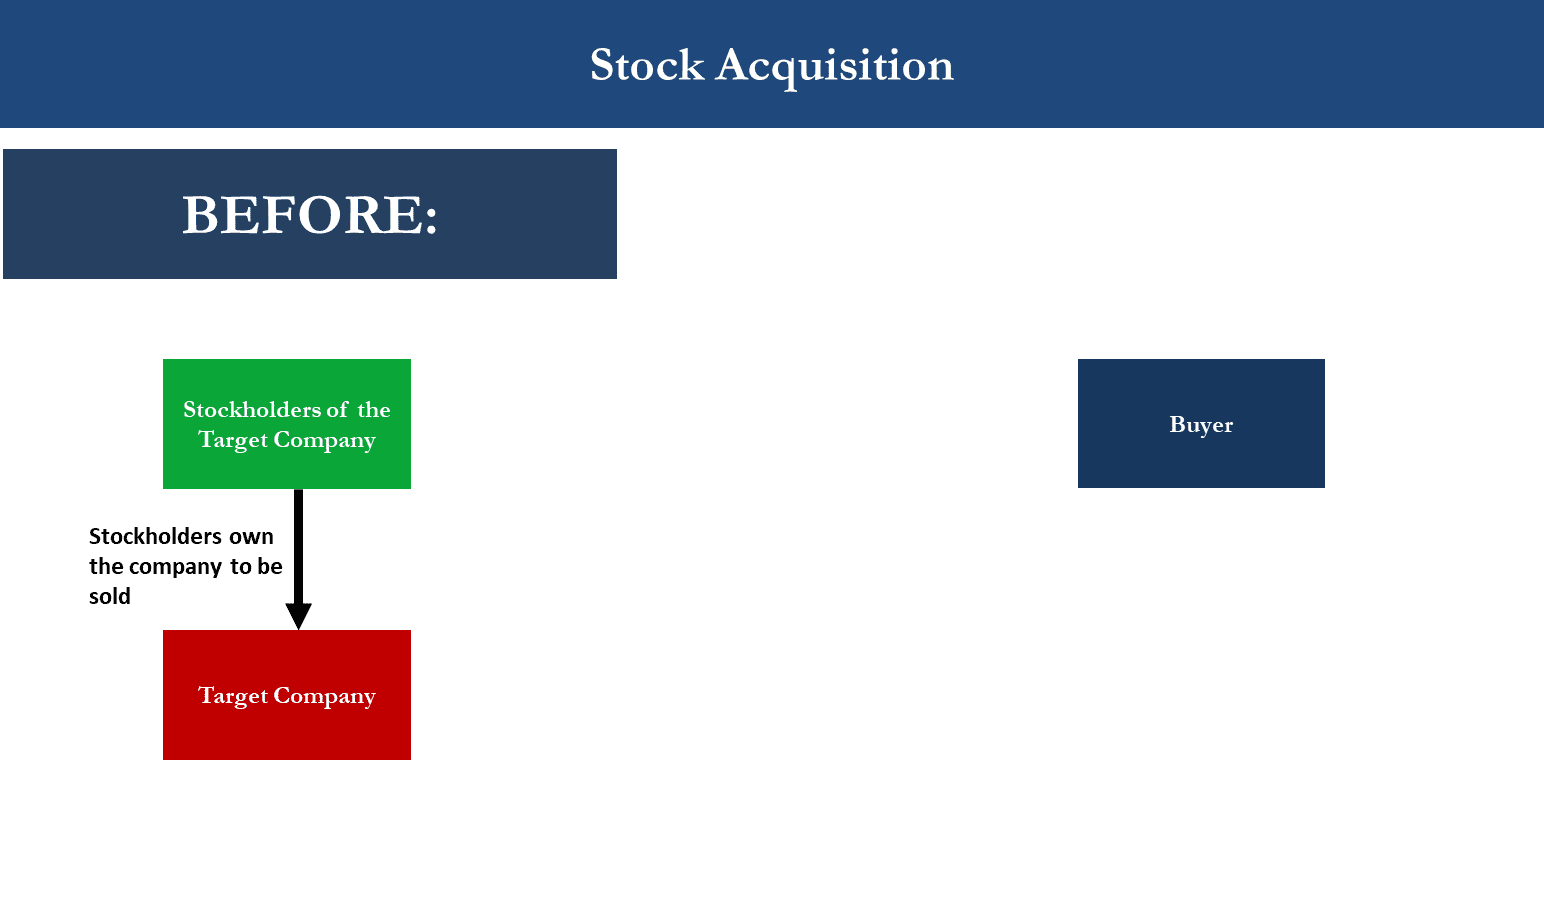 M&A Stock Acquisition Diagram showing Status Before Transaction Takes Place